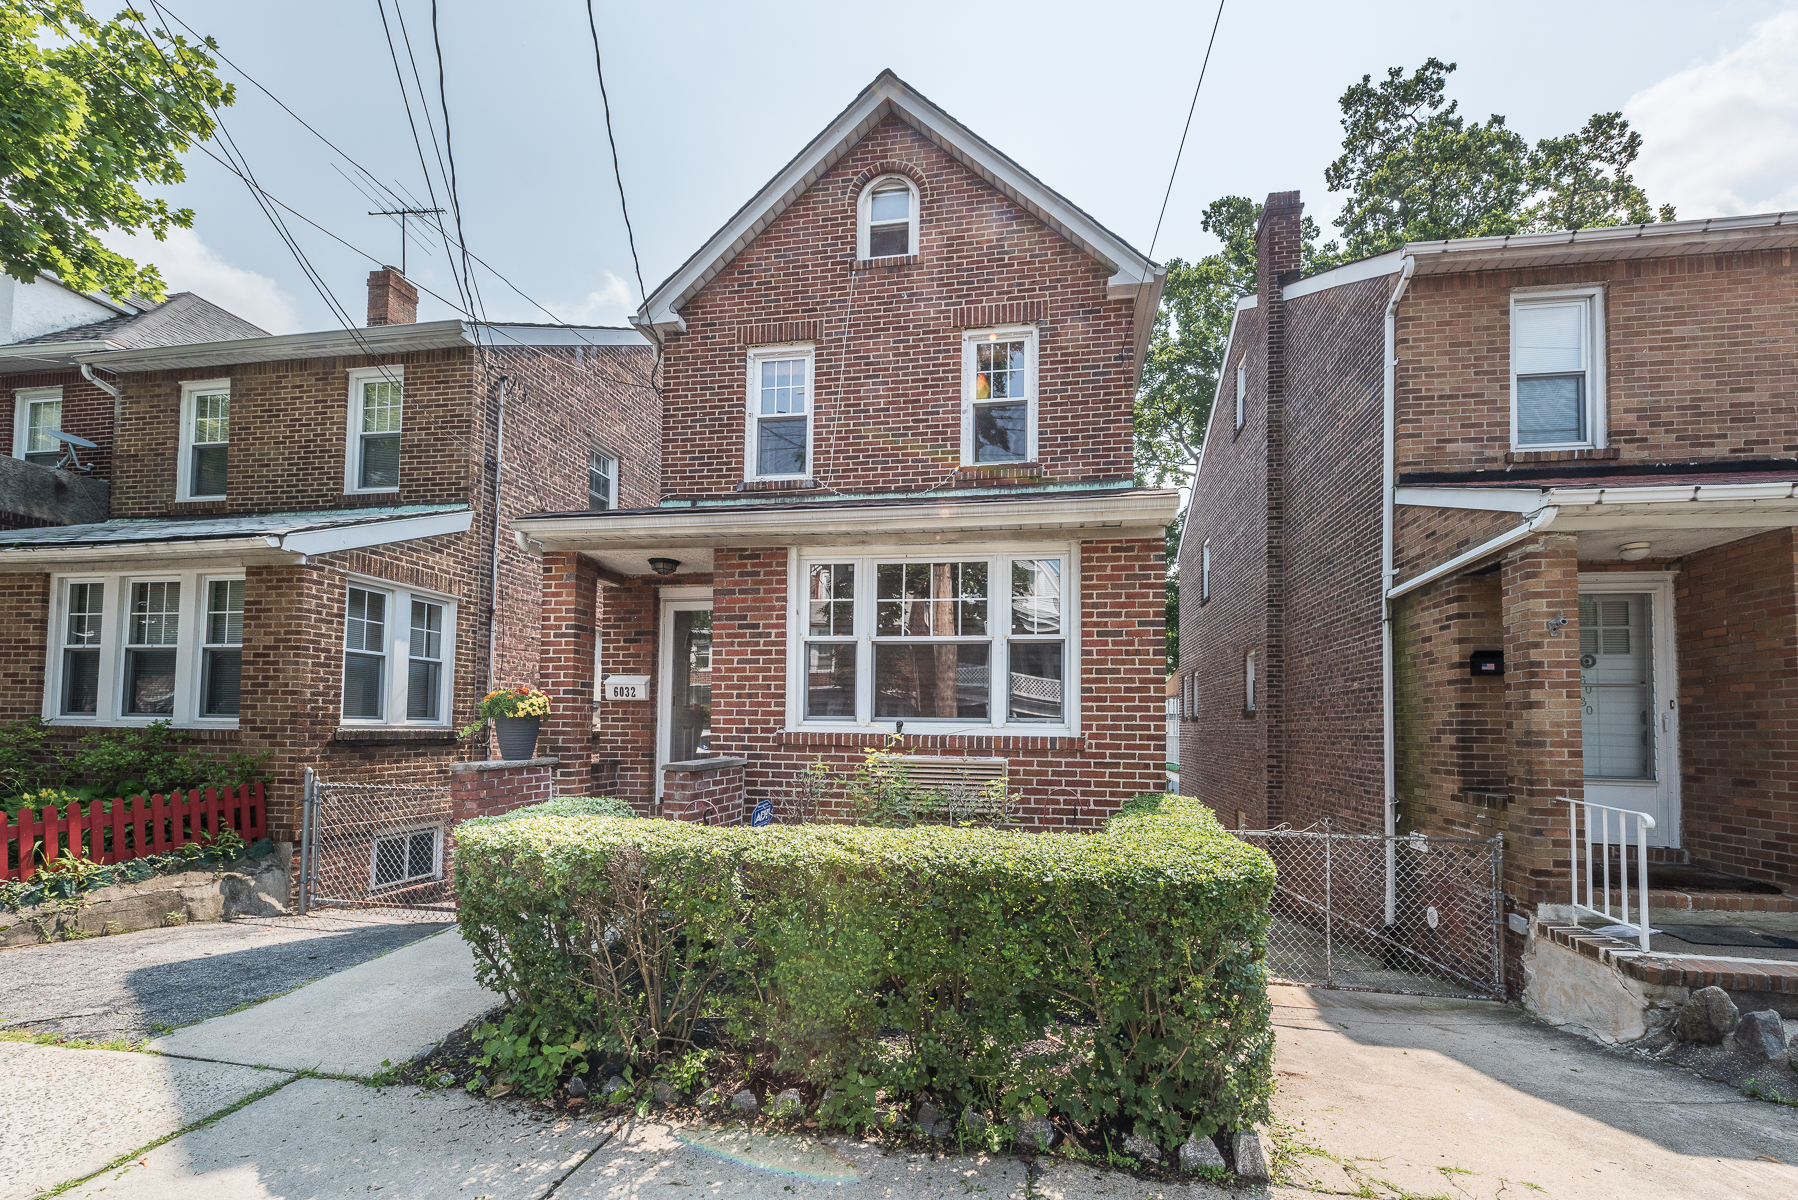 Vivienda unifamiliar por un Venta en Charming, Detached Brick Home 6032 Liebig Avenue Riverdale, Nueva York 10471 Estados Unidos